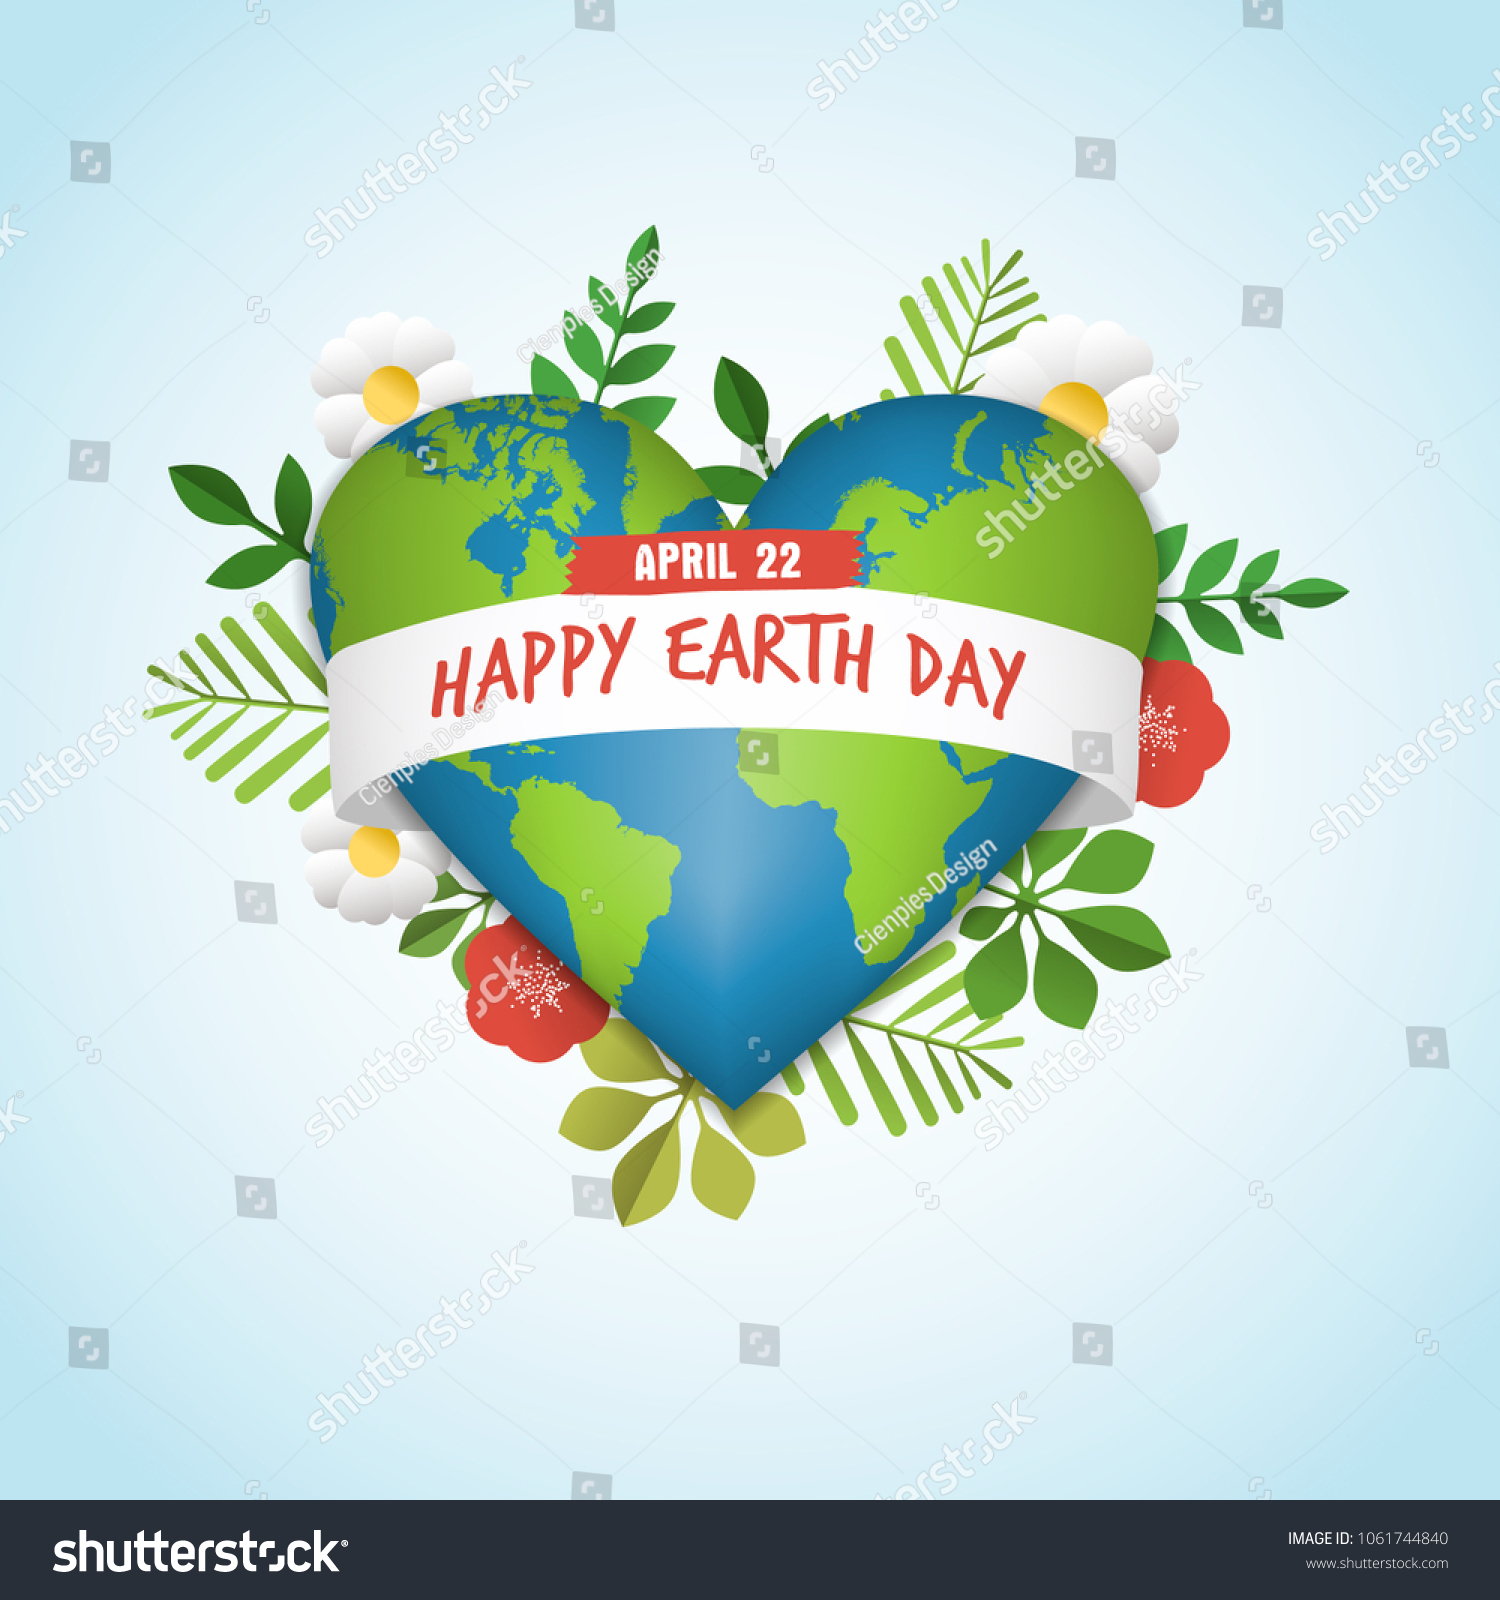 Happy earth day greeting card green stock vector 1061744840 happy earth day greeting card of green planet in heart shape with nature decoration includes kristyandbryce Images